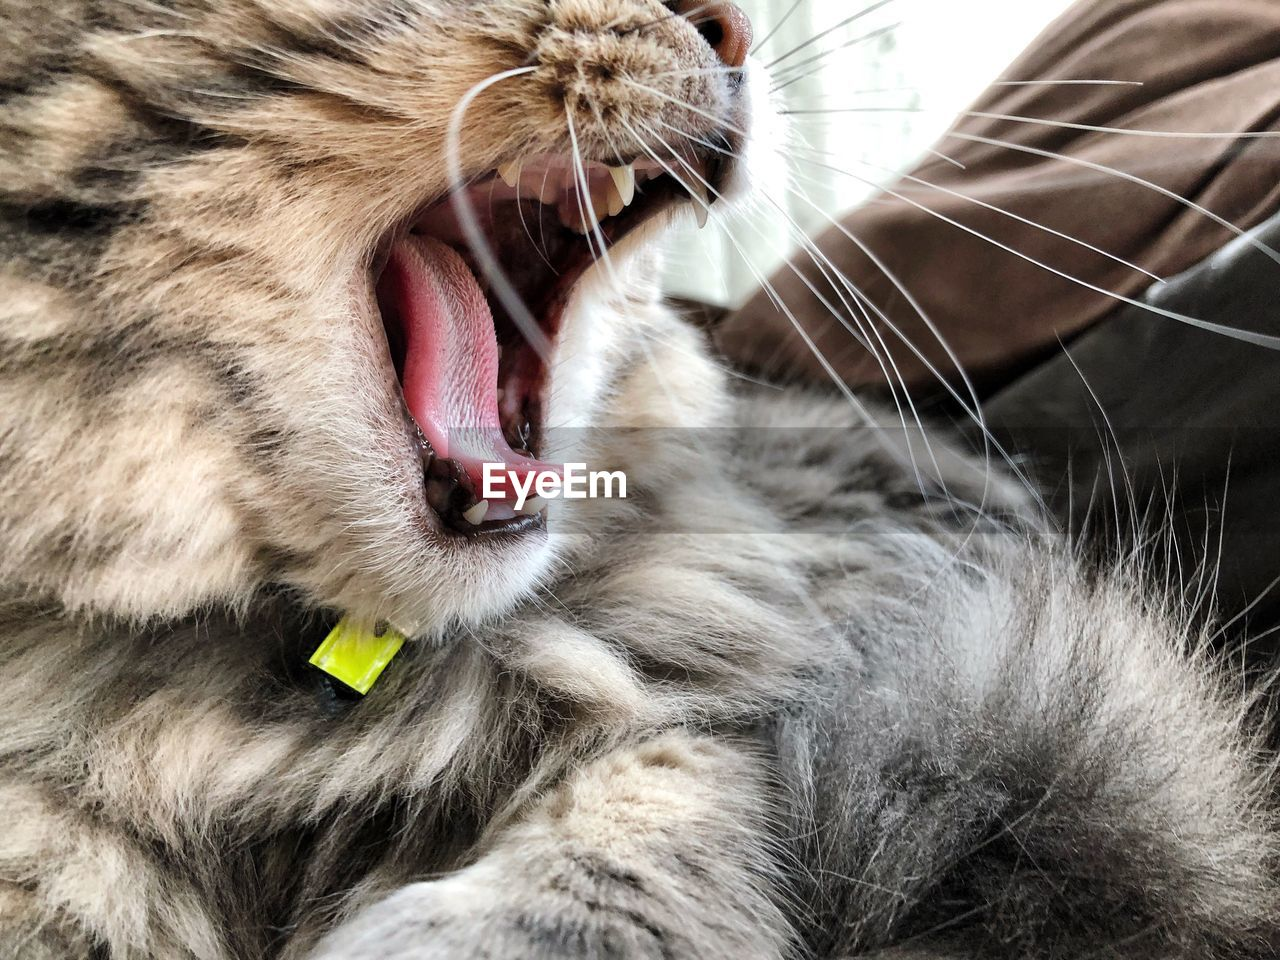 mammal, animal, animal themes, mouth open, mouth, cat, one animal, feline, domestic cat, yawning, animal body part, facial expression, whisker, domestic animals, pets, close-up, vertebrate, domestic, animal teeth, no people, animal tongue, animal head, animal mouth